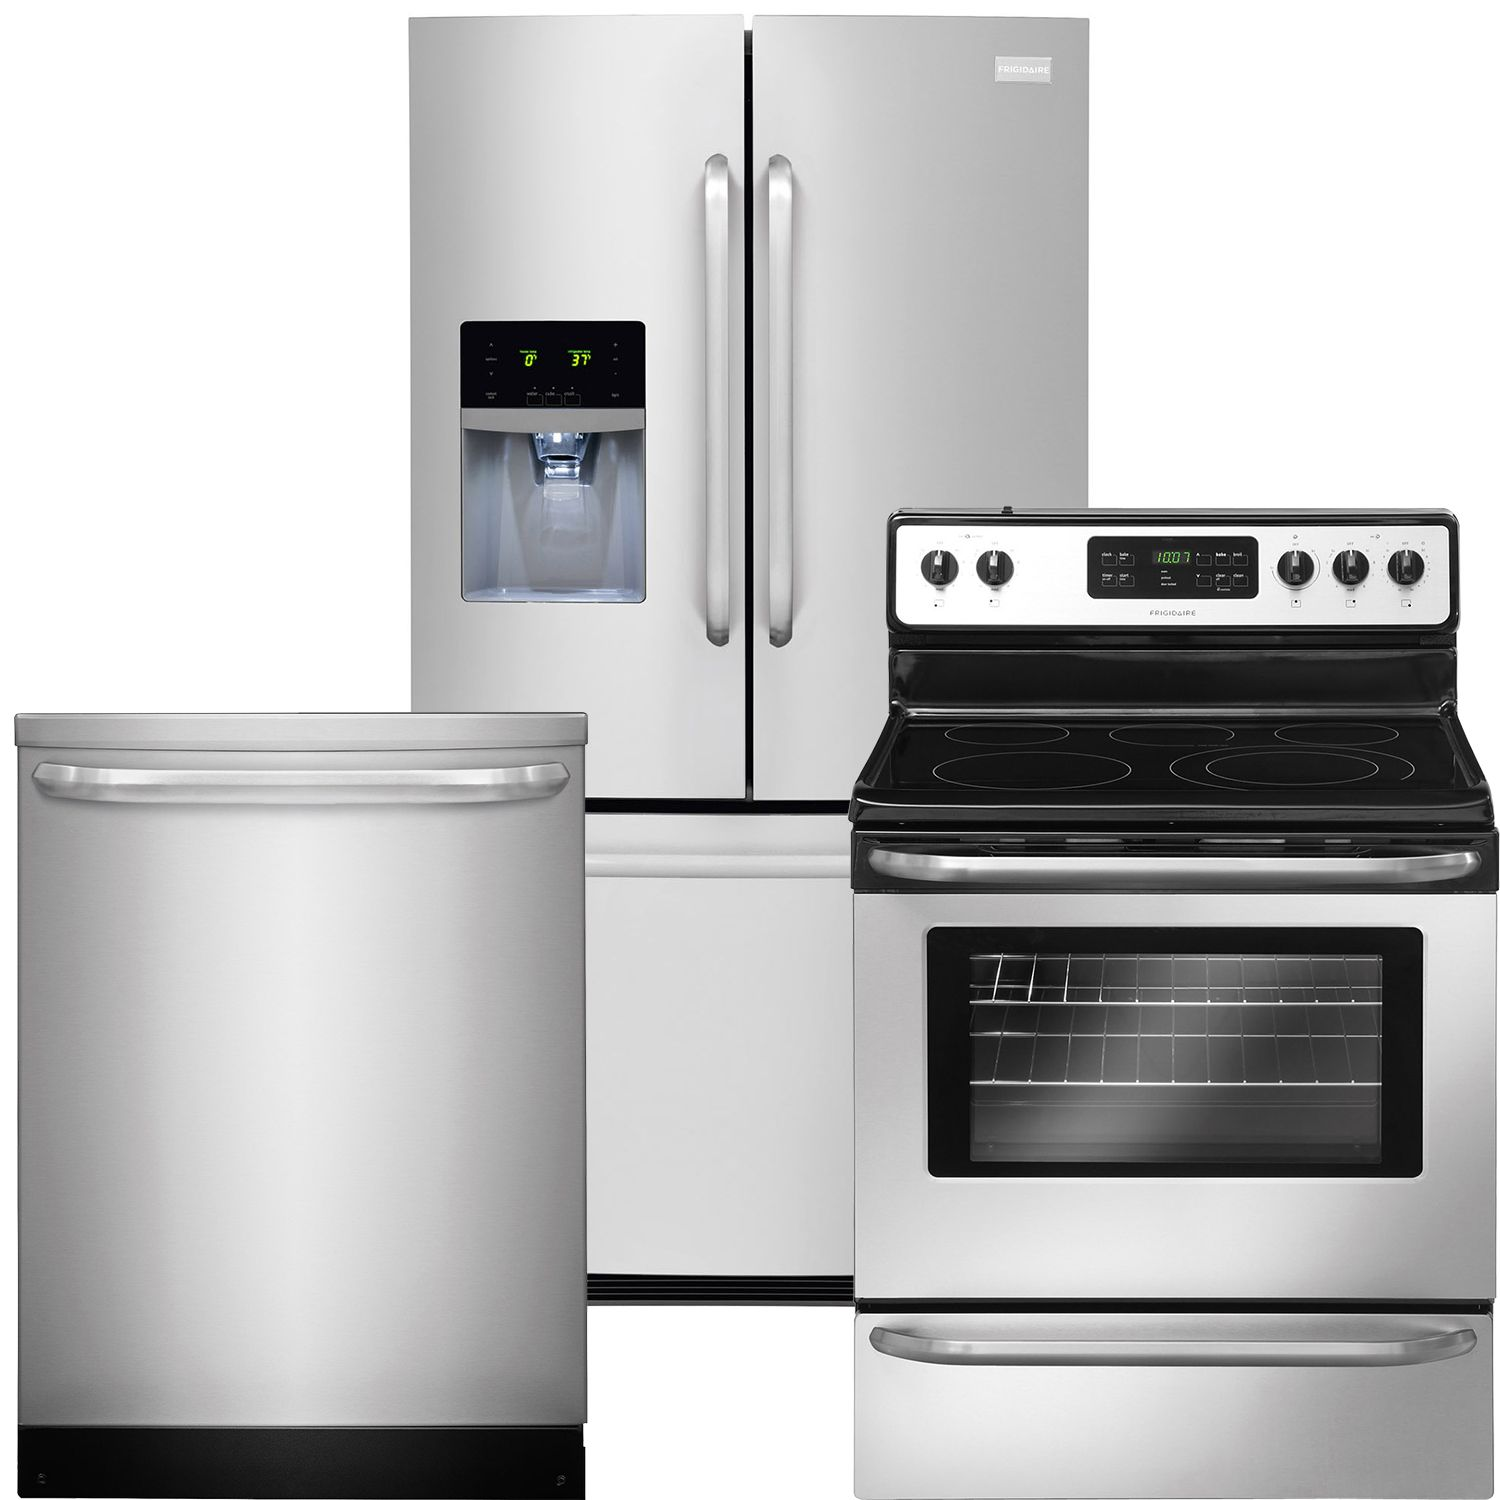 combo refrigerator appliances amazon dp and com frigidaire in stainless cu with freezer french ft door all built